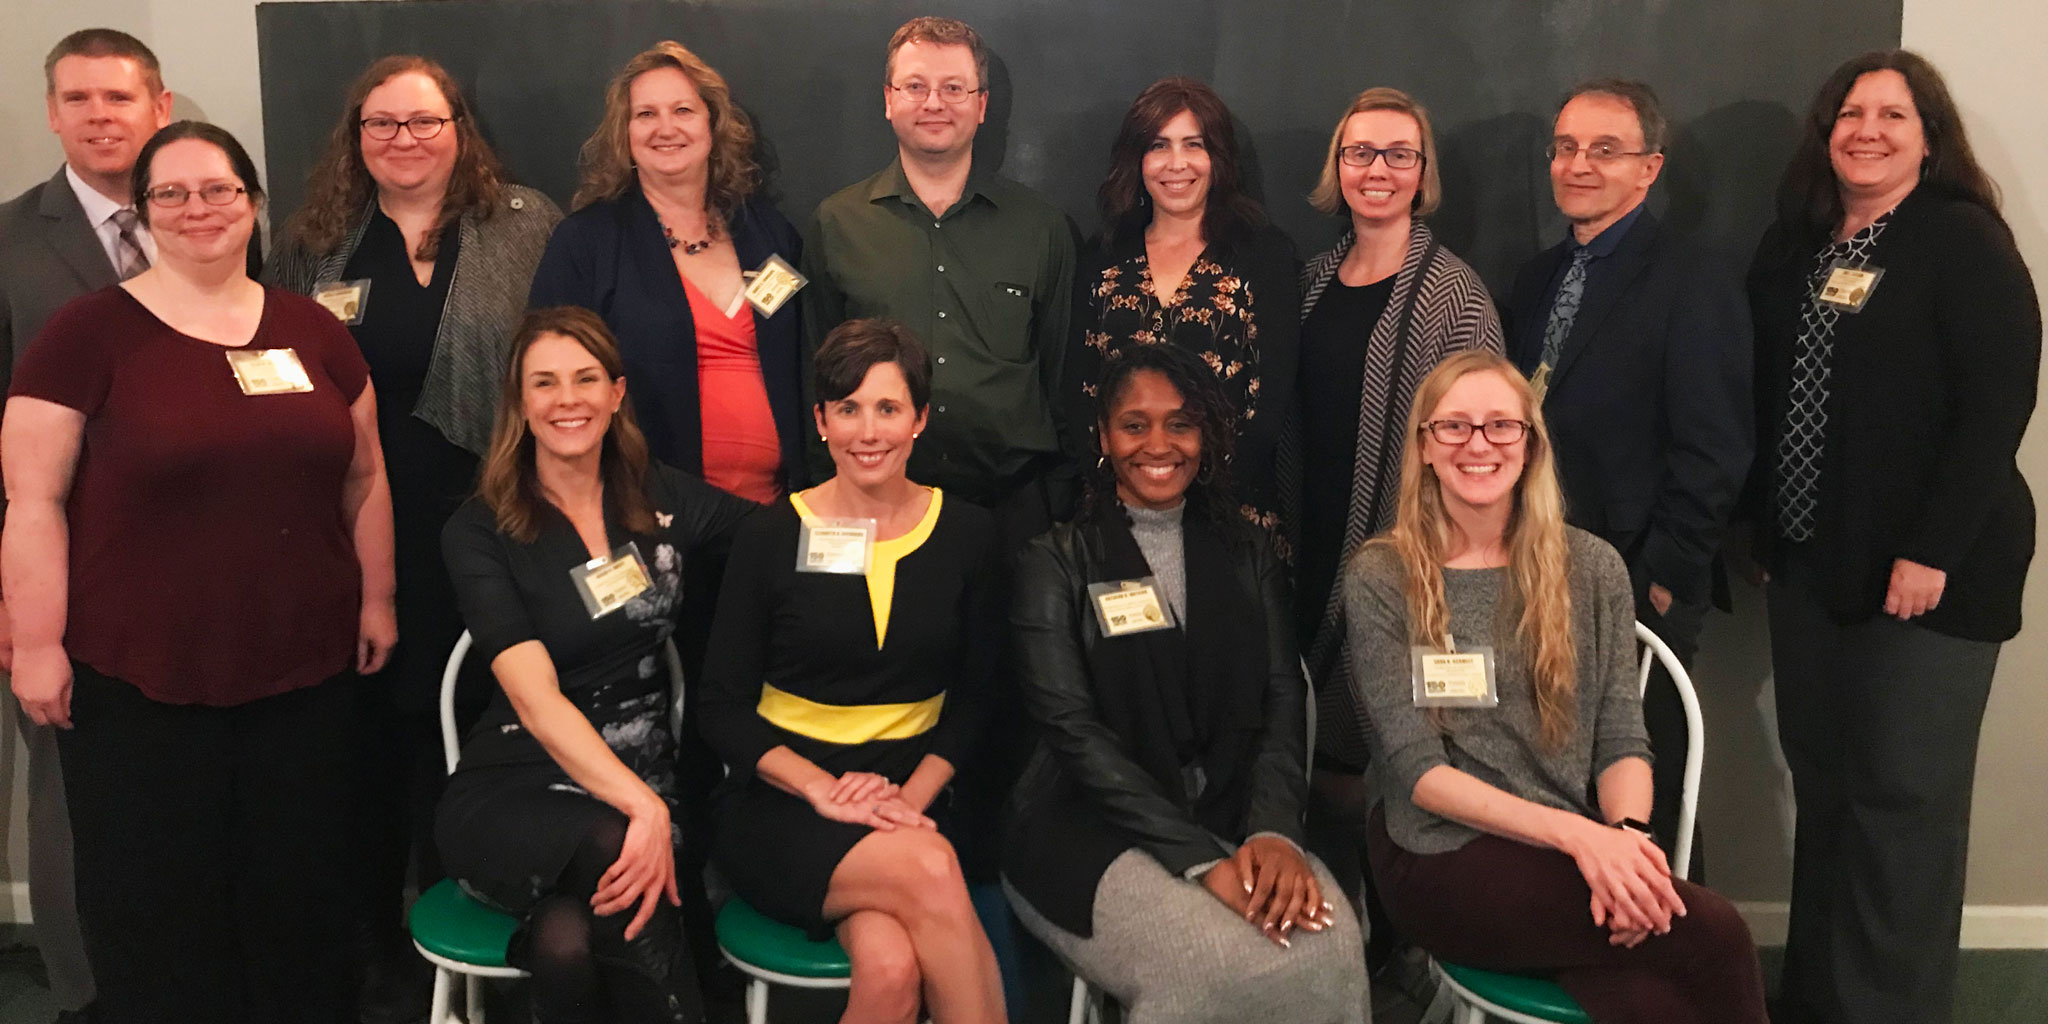 2019 Promoted Faculty in College of Health and Human Sciences: Back row, left to right: Scott Lawrance, Arielle Borovsky, Nancy Edwards, Darryl Schneider, Amy Brewster, AJ Schwichtenberg, German Posada, Zoe Taylor Front row, left to right: Ellen Wells, Regan Bailey, Libby Richards, Natasha Watkins, Sara Schmitt Not pictured: Jennifer Coddington